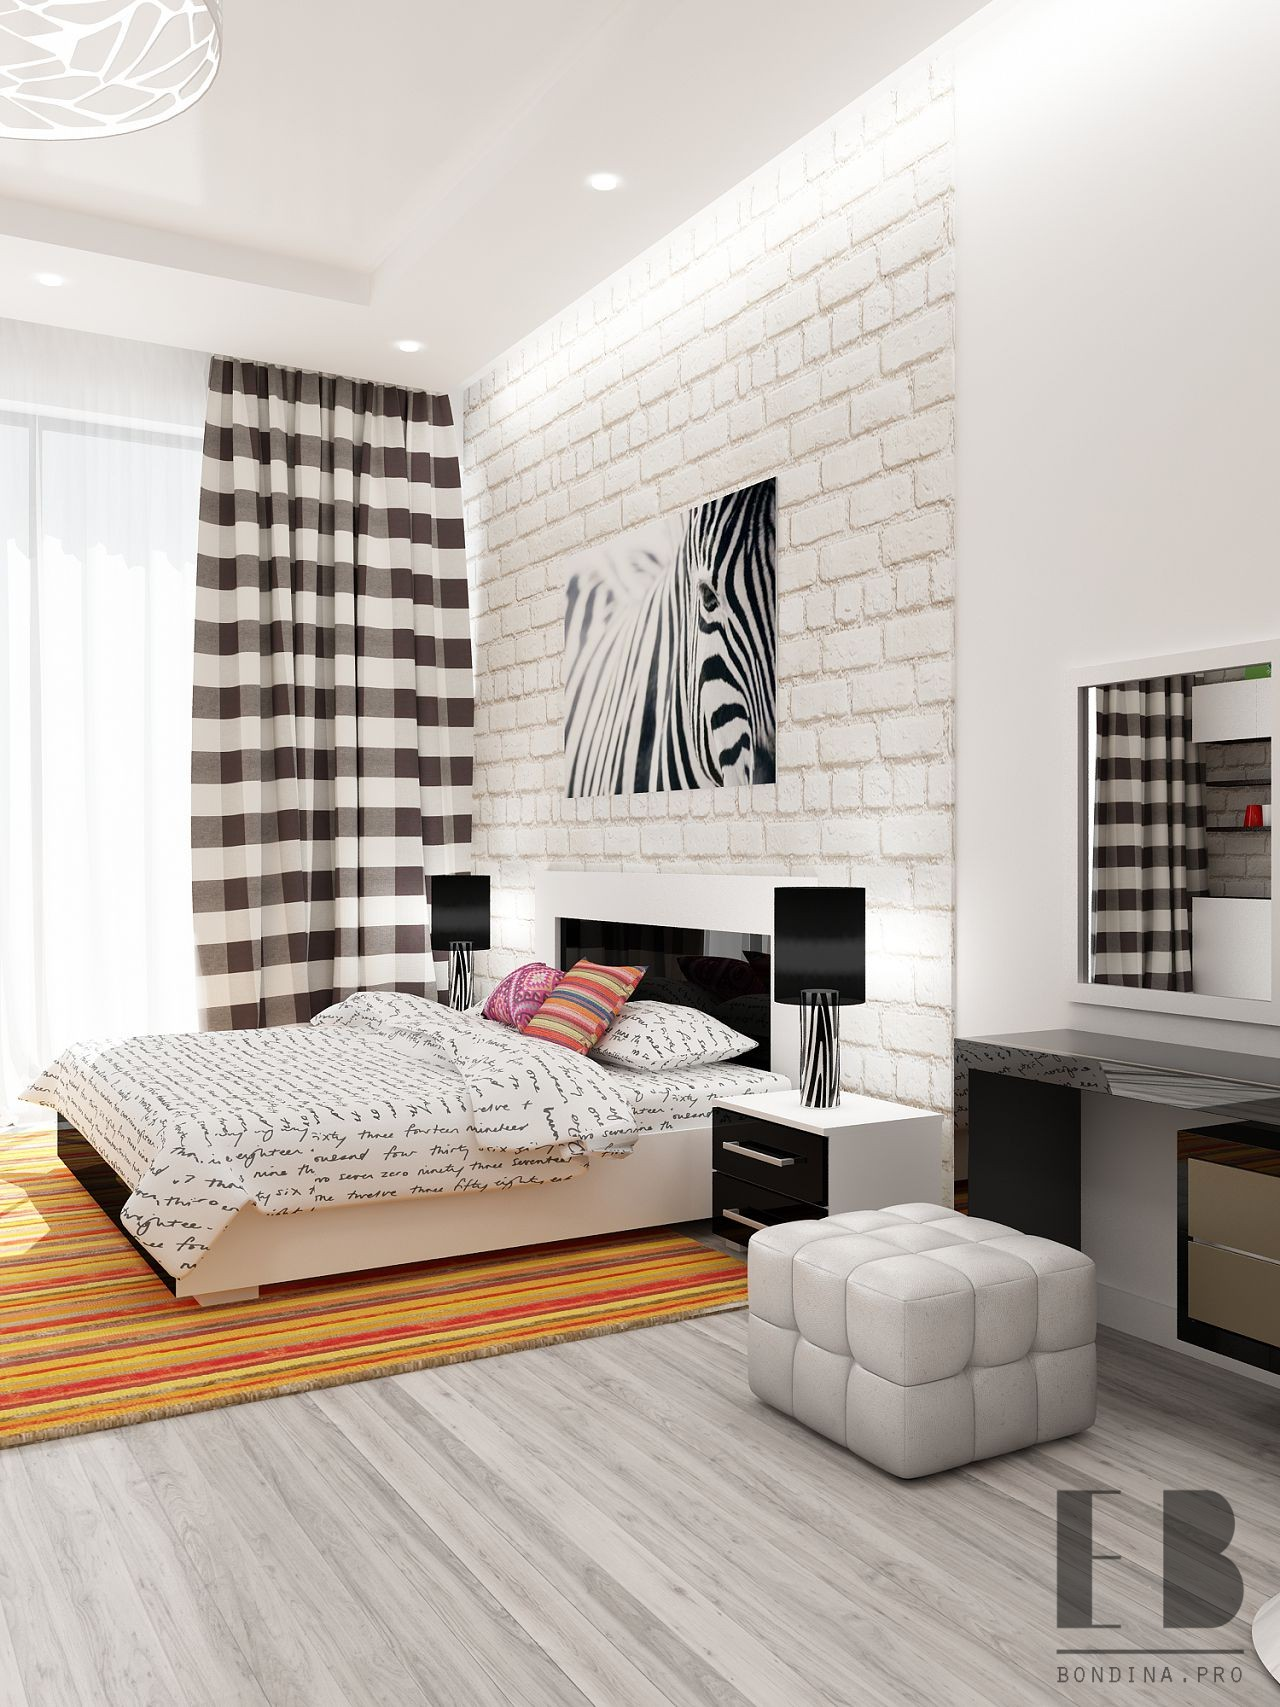 Bedroom with black and white furniture. interior